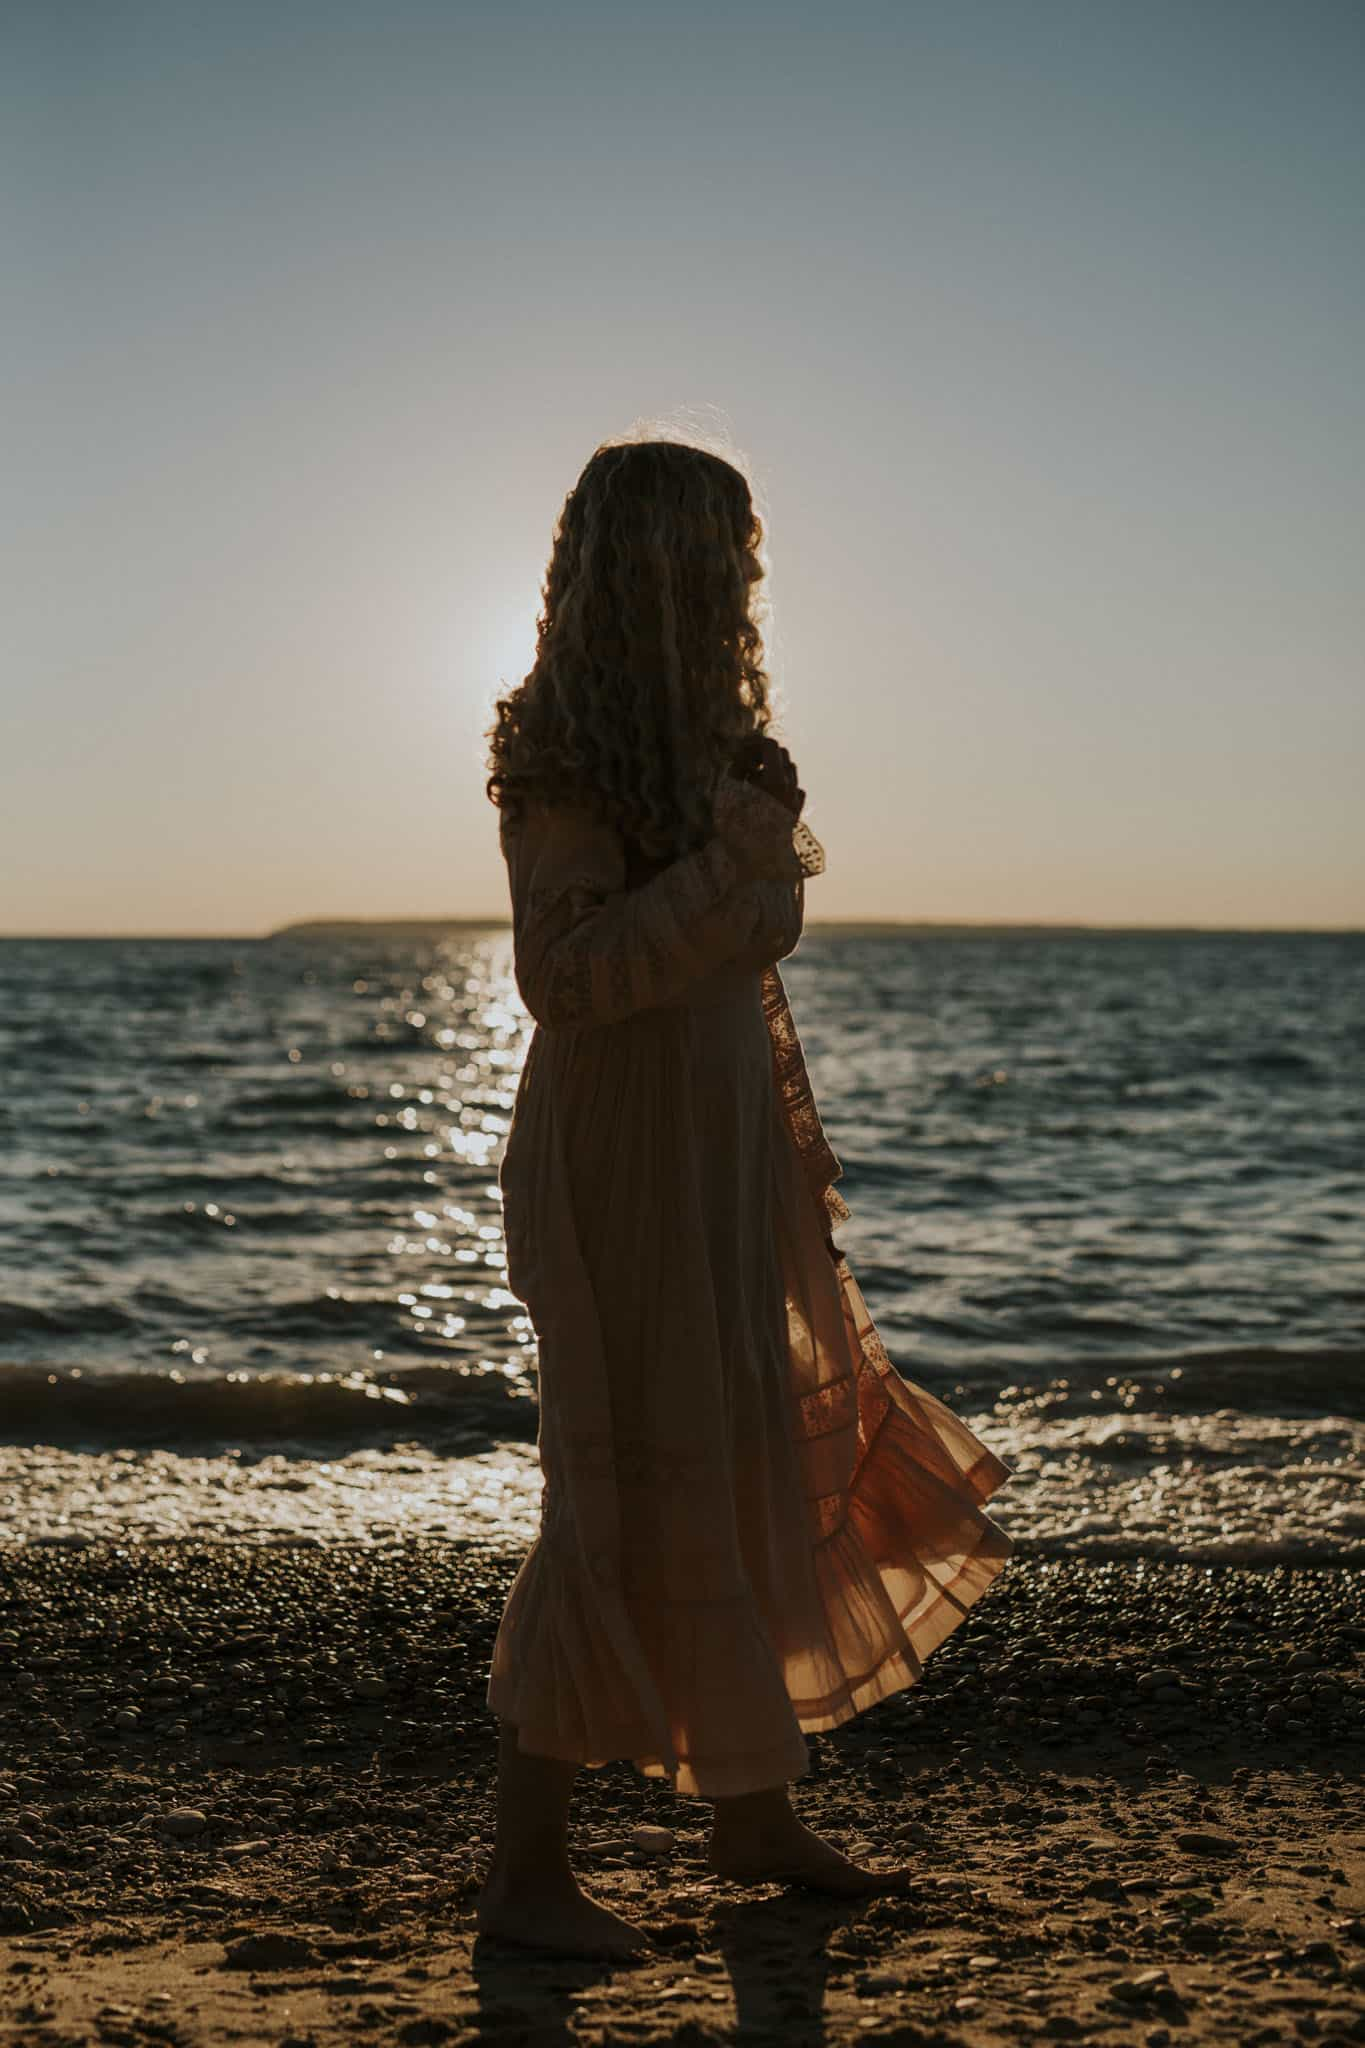 Sunset on a beach in northern michigan during a senior portrait session